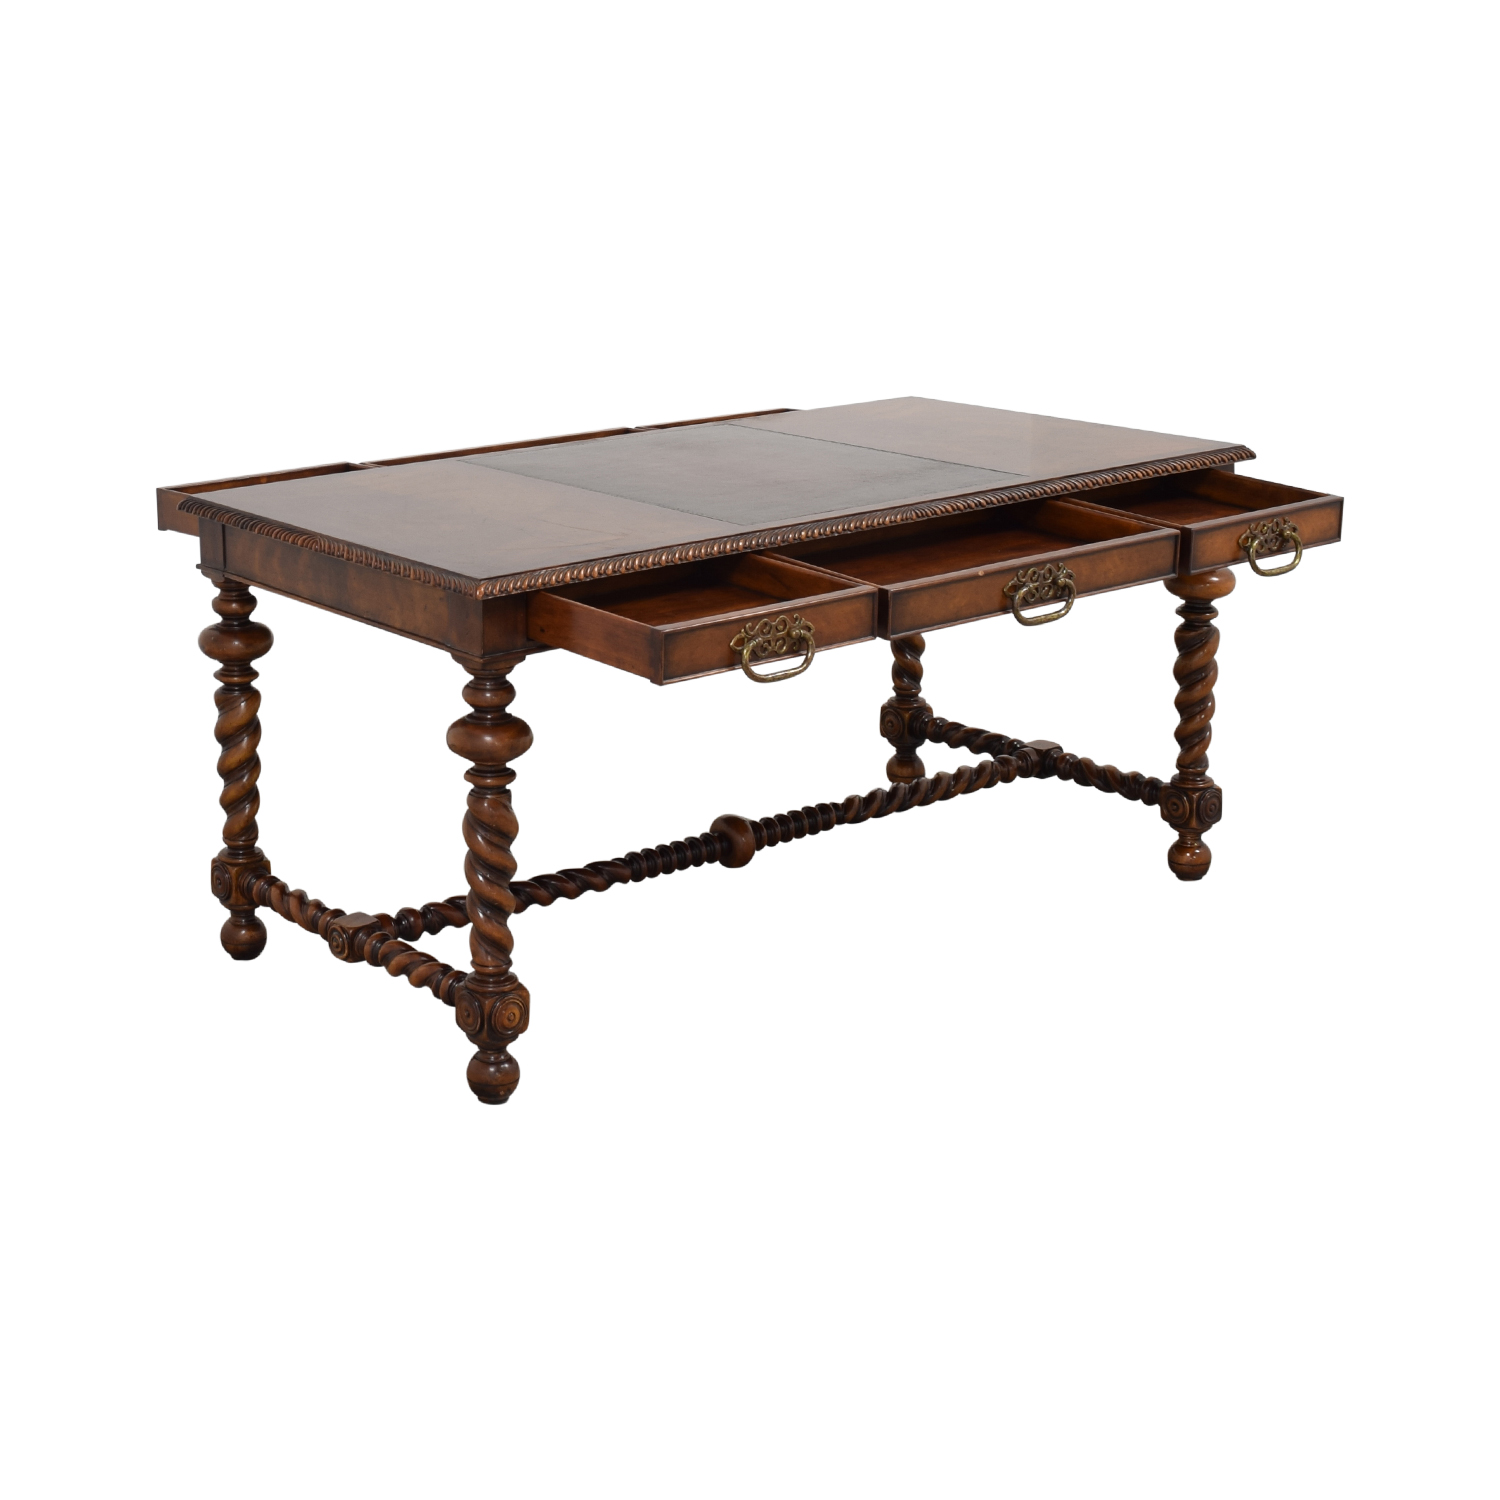 Decorative Writing Desk / Tables